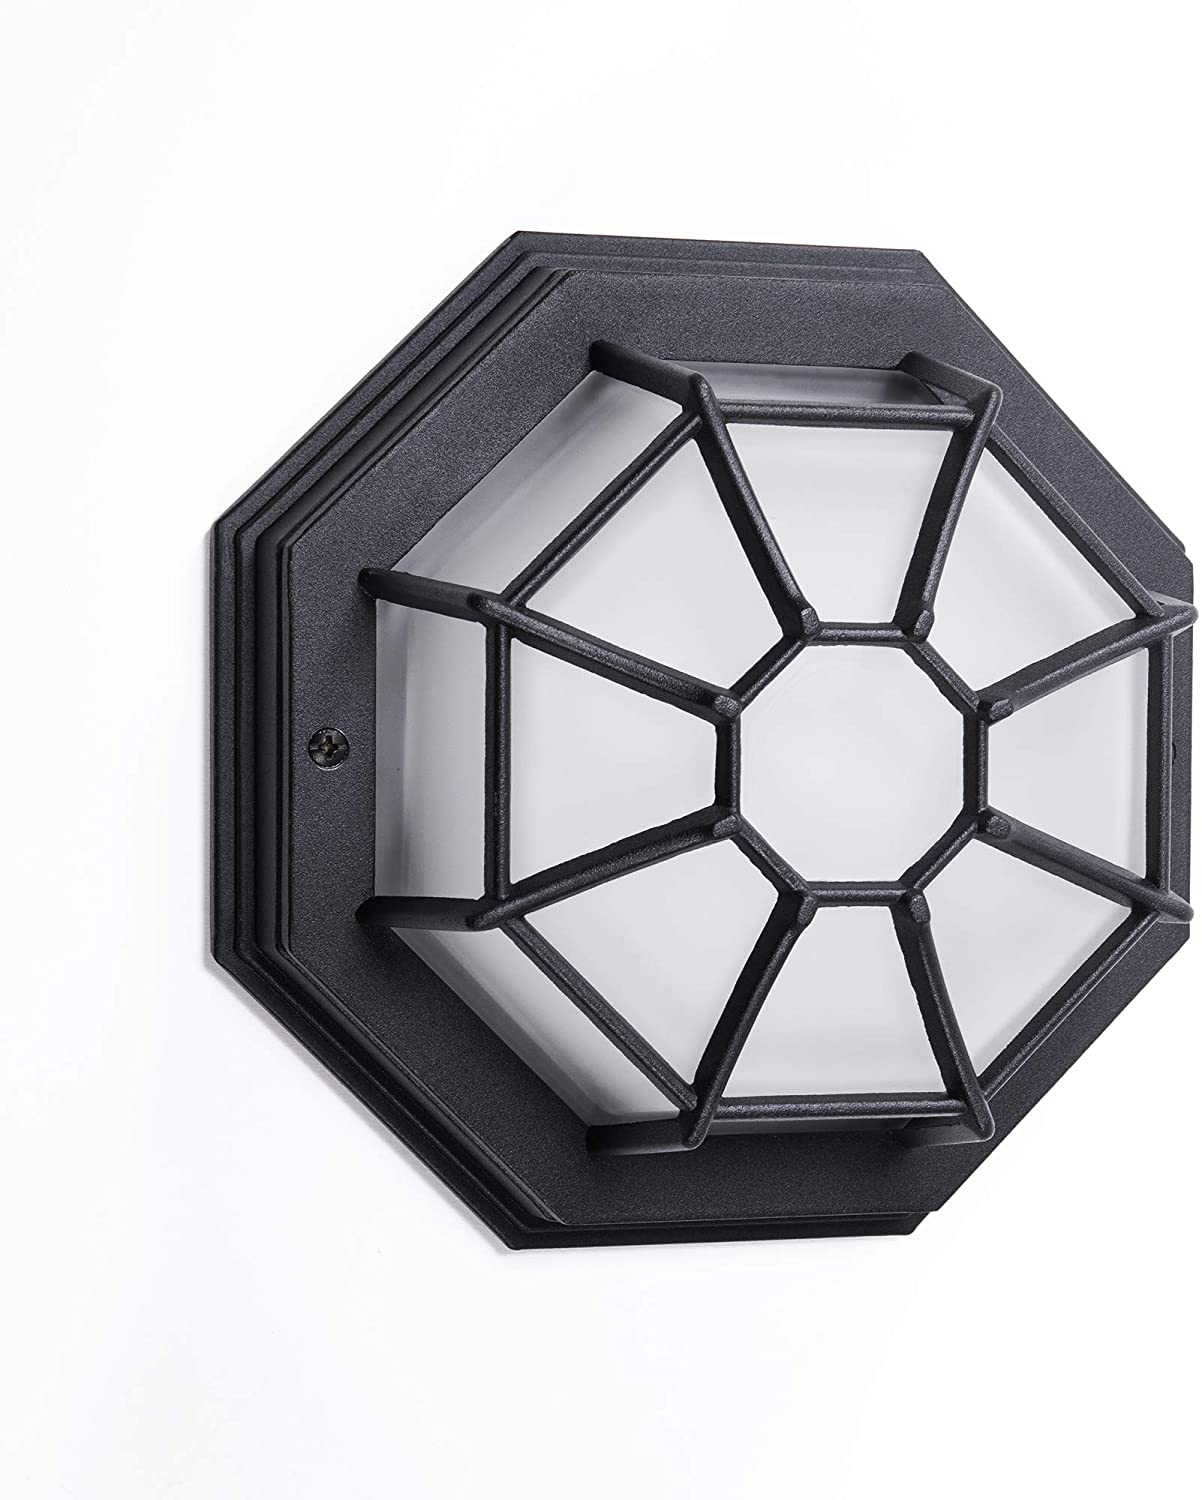 """CORAMDEO Outdoor 9"""" LED Nautical Wall or Ceiling Flush Mount Light, Wet Location, Built in LED Gives 75W of Light, 900 Lumens, 3K, Black Cast Aluminum with Frosted Glass Lens"""